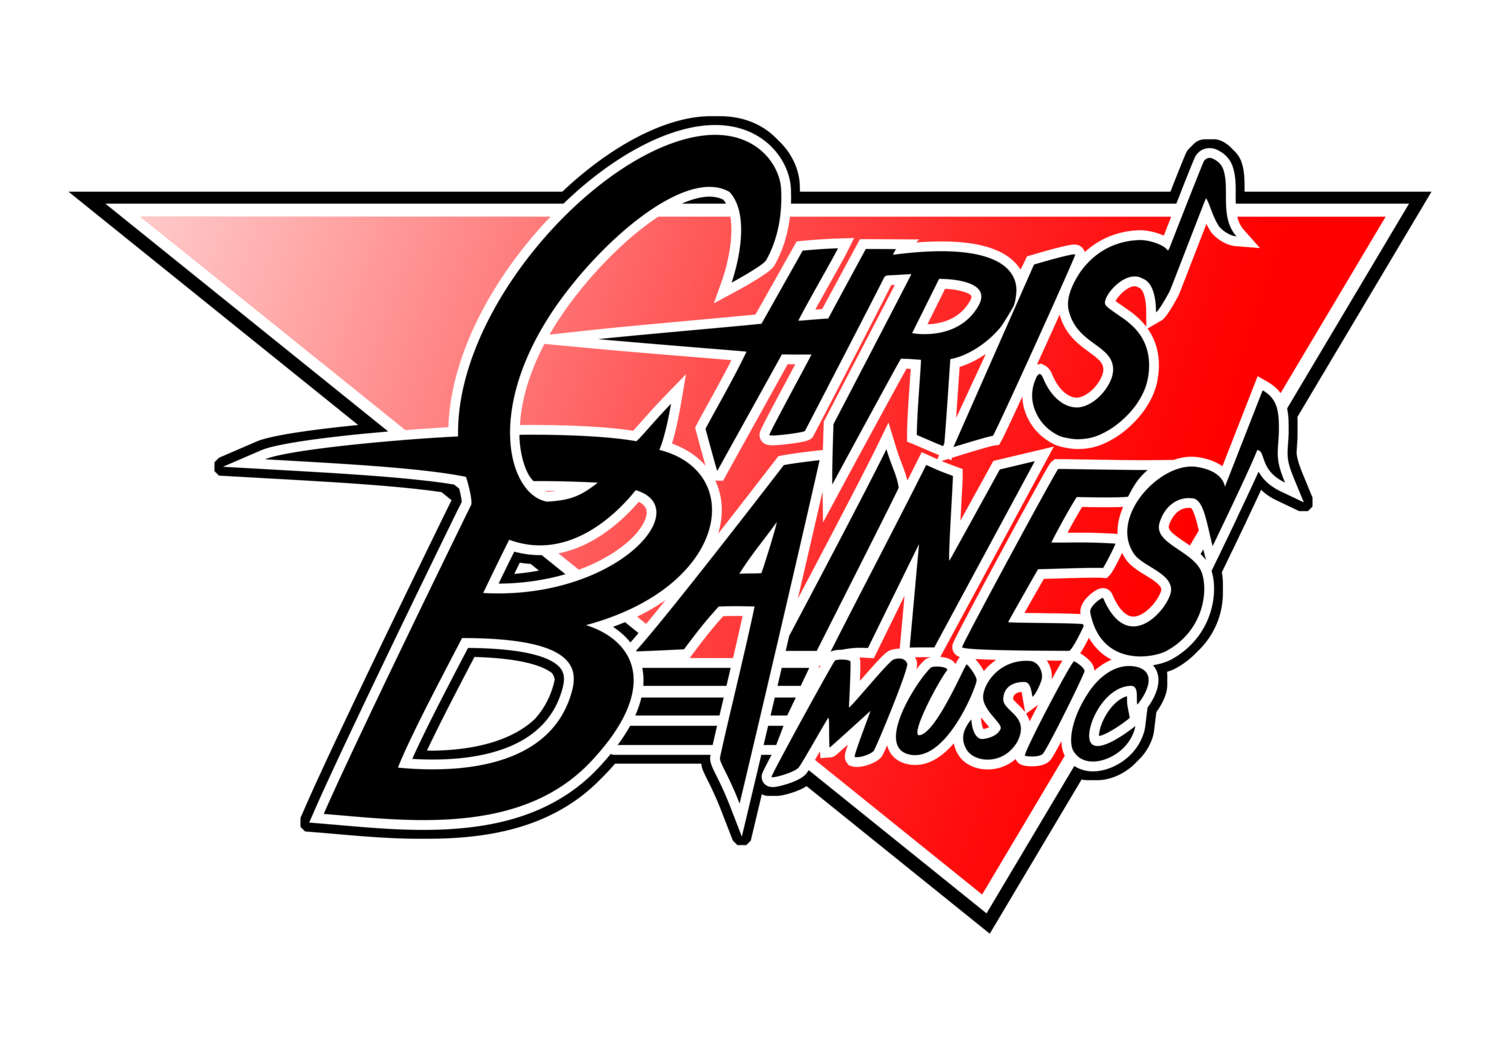 Chris Baines Music